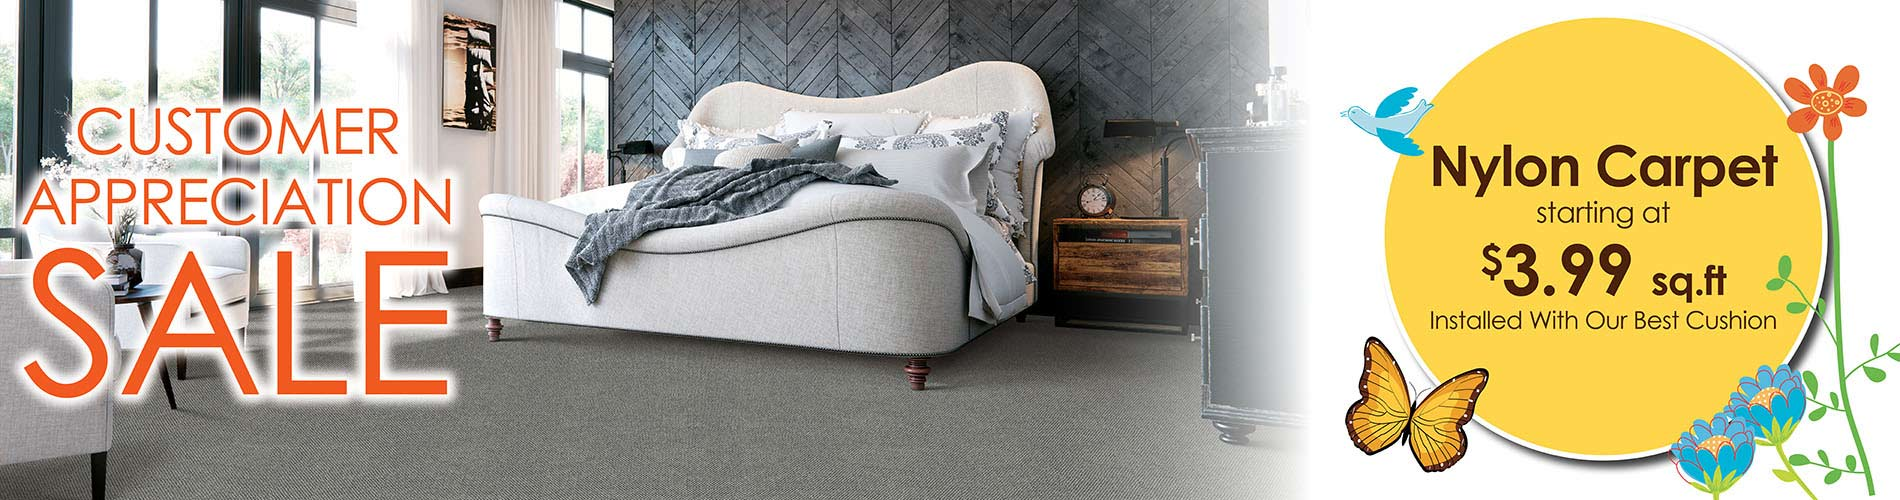 Nylon Carpet starting at $3.99 sq.ft. INSTALLED with best cushion at Bell Carpet & Floors in Wichita